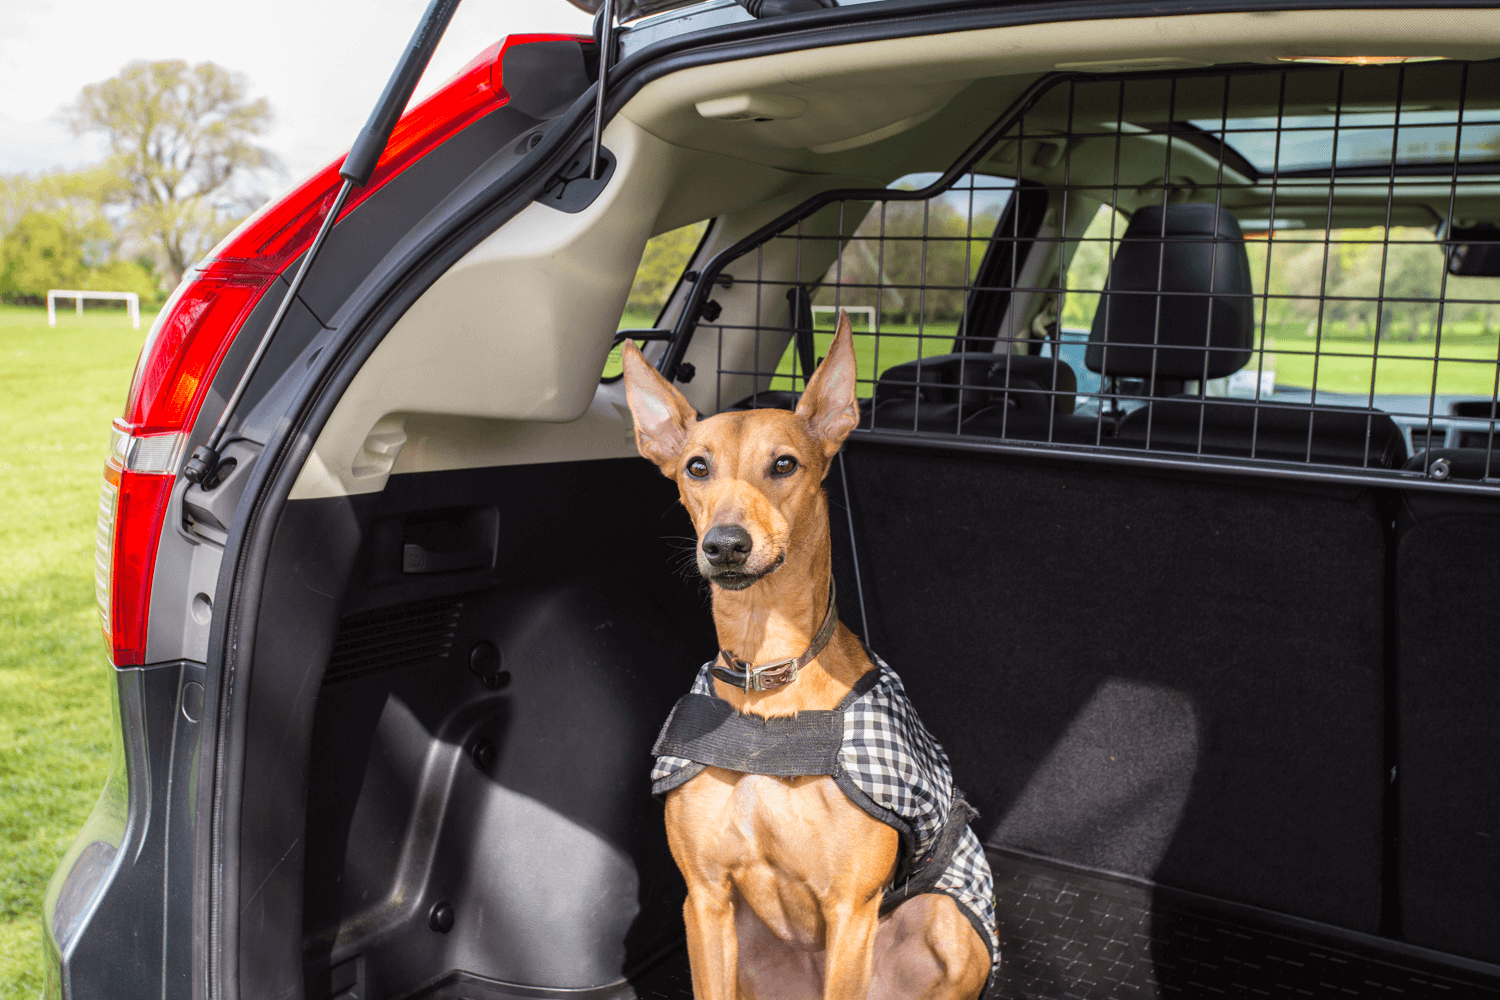 Mylo, a whippet, is sitting in the rear of a vehicle with a Travall Guard installed.